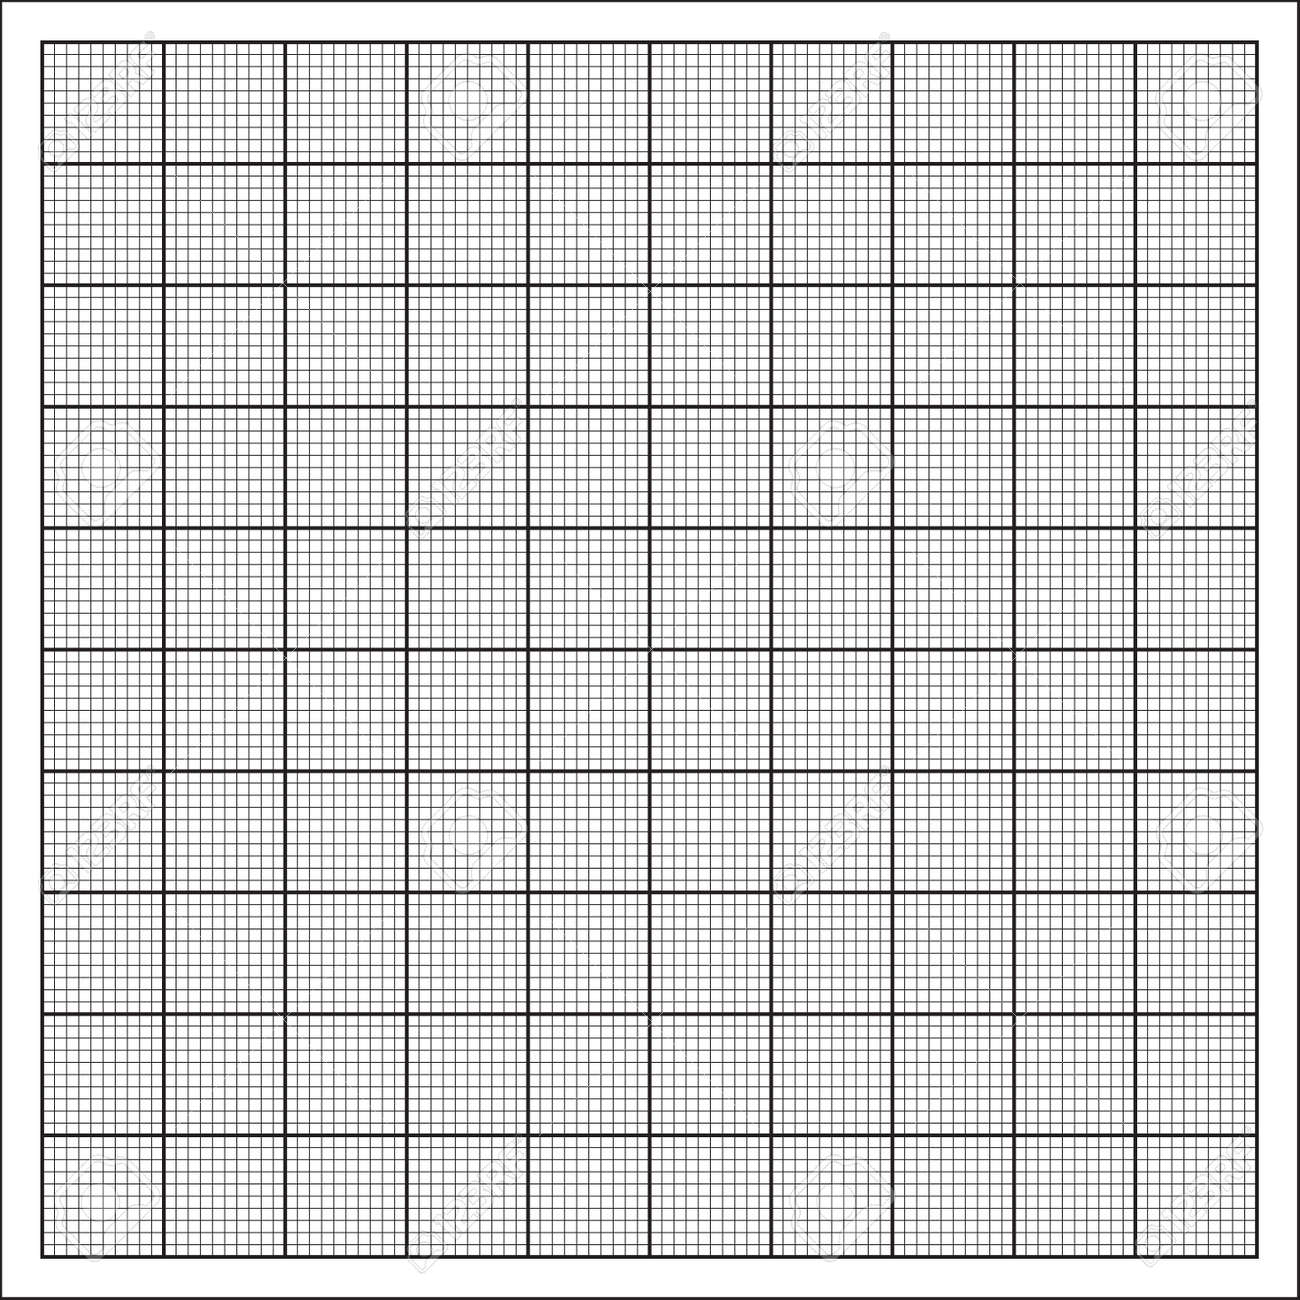 millimeter paper grid vector 100mm square pattern royalty free